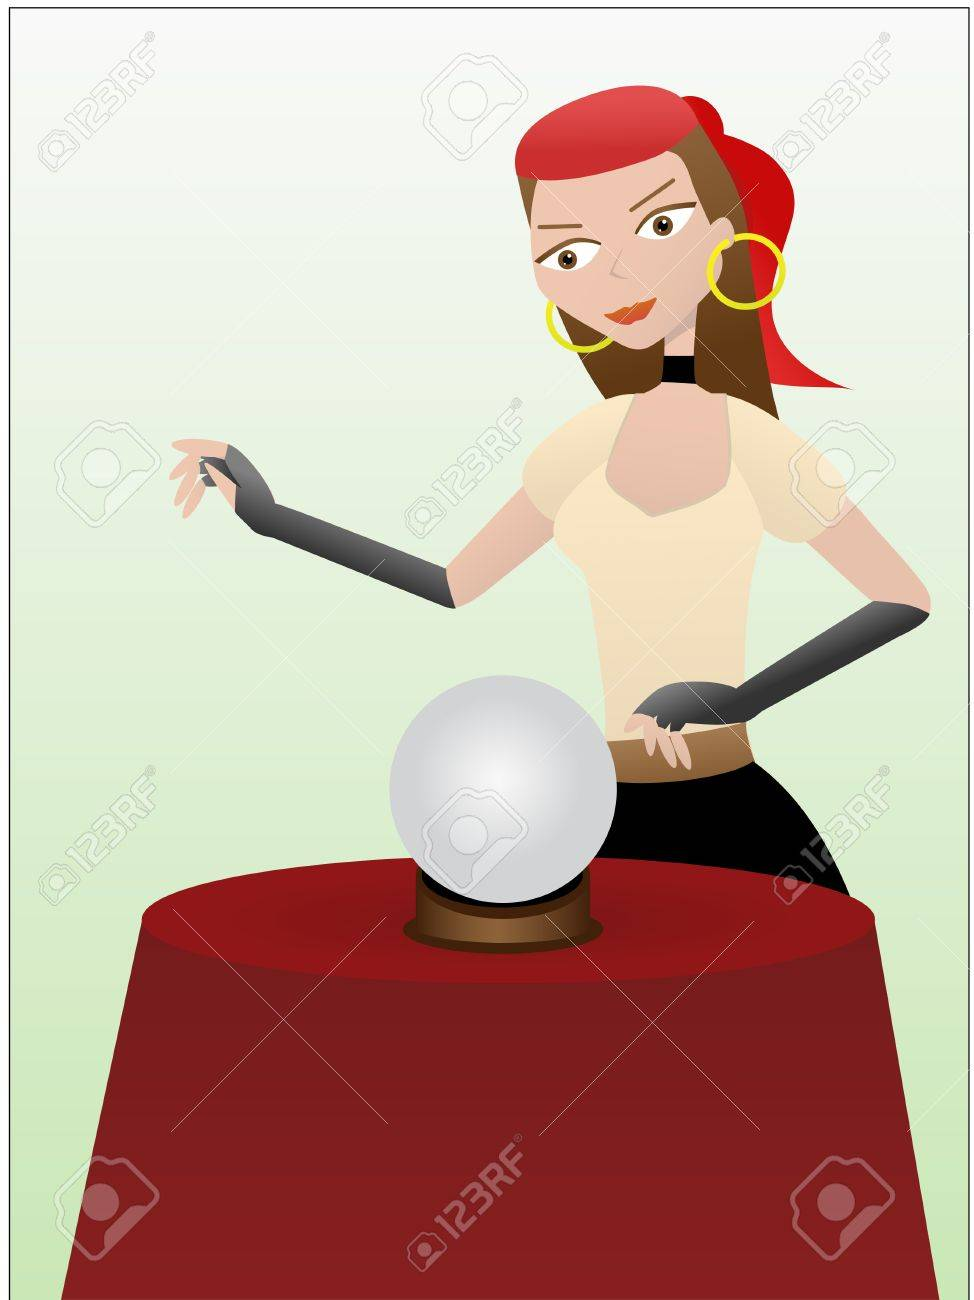 Fortune teller gypsy standing over crystal ball Stock Vector - 6270873